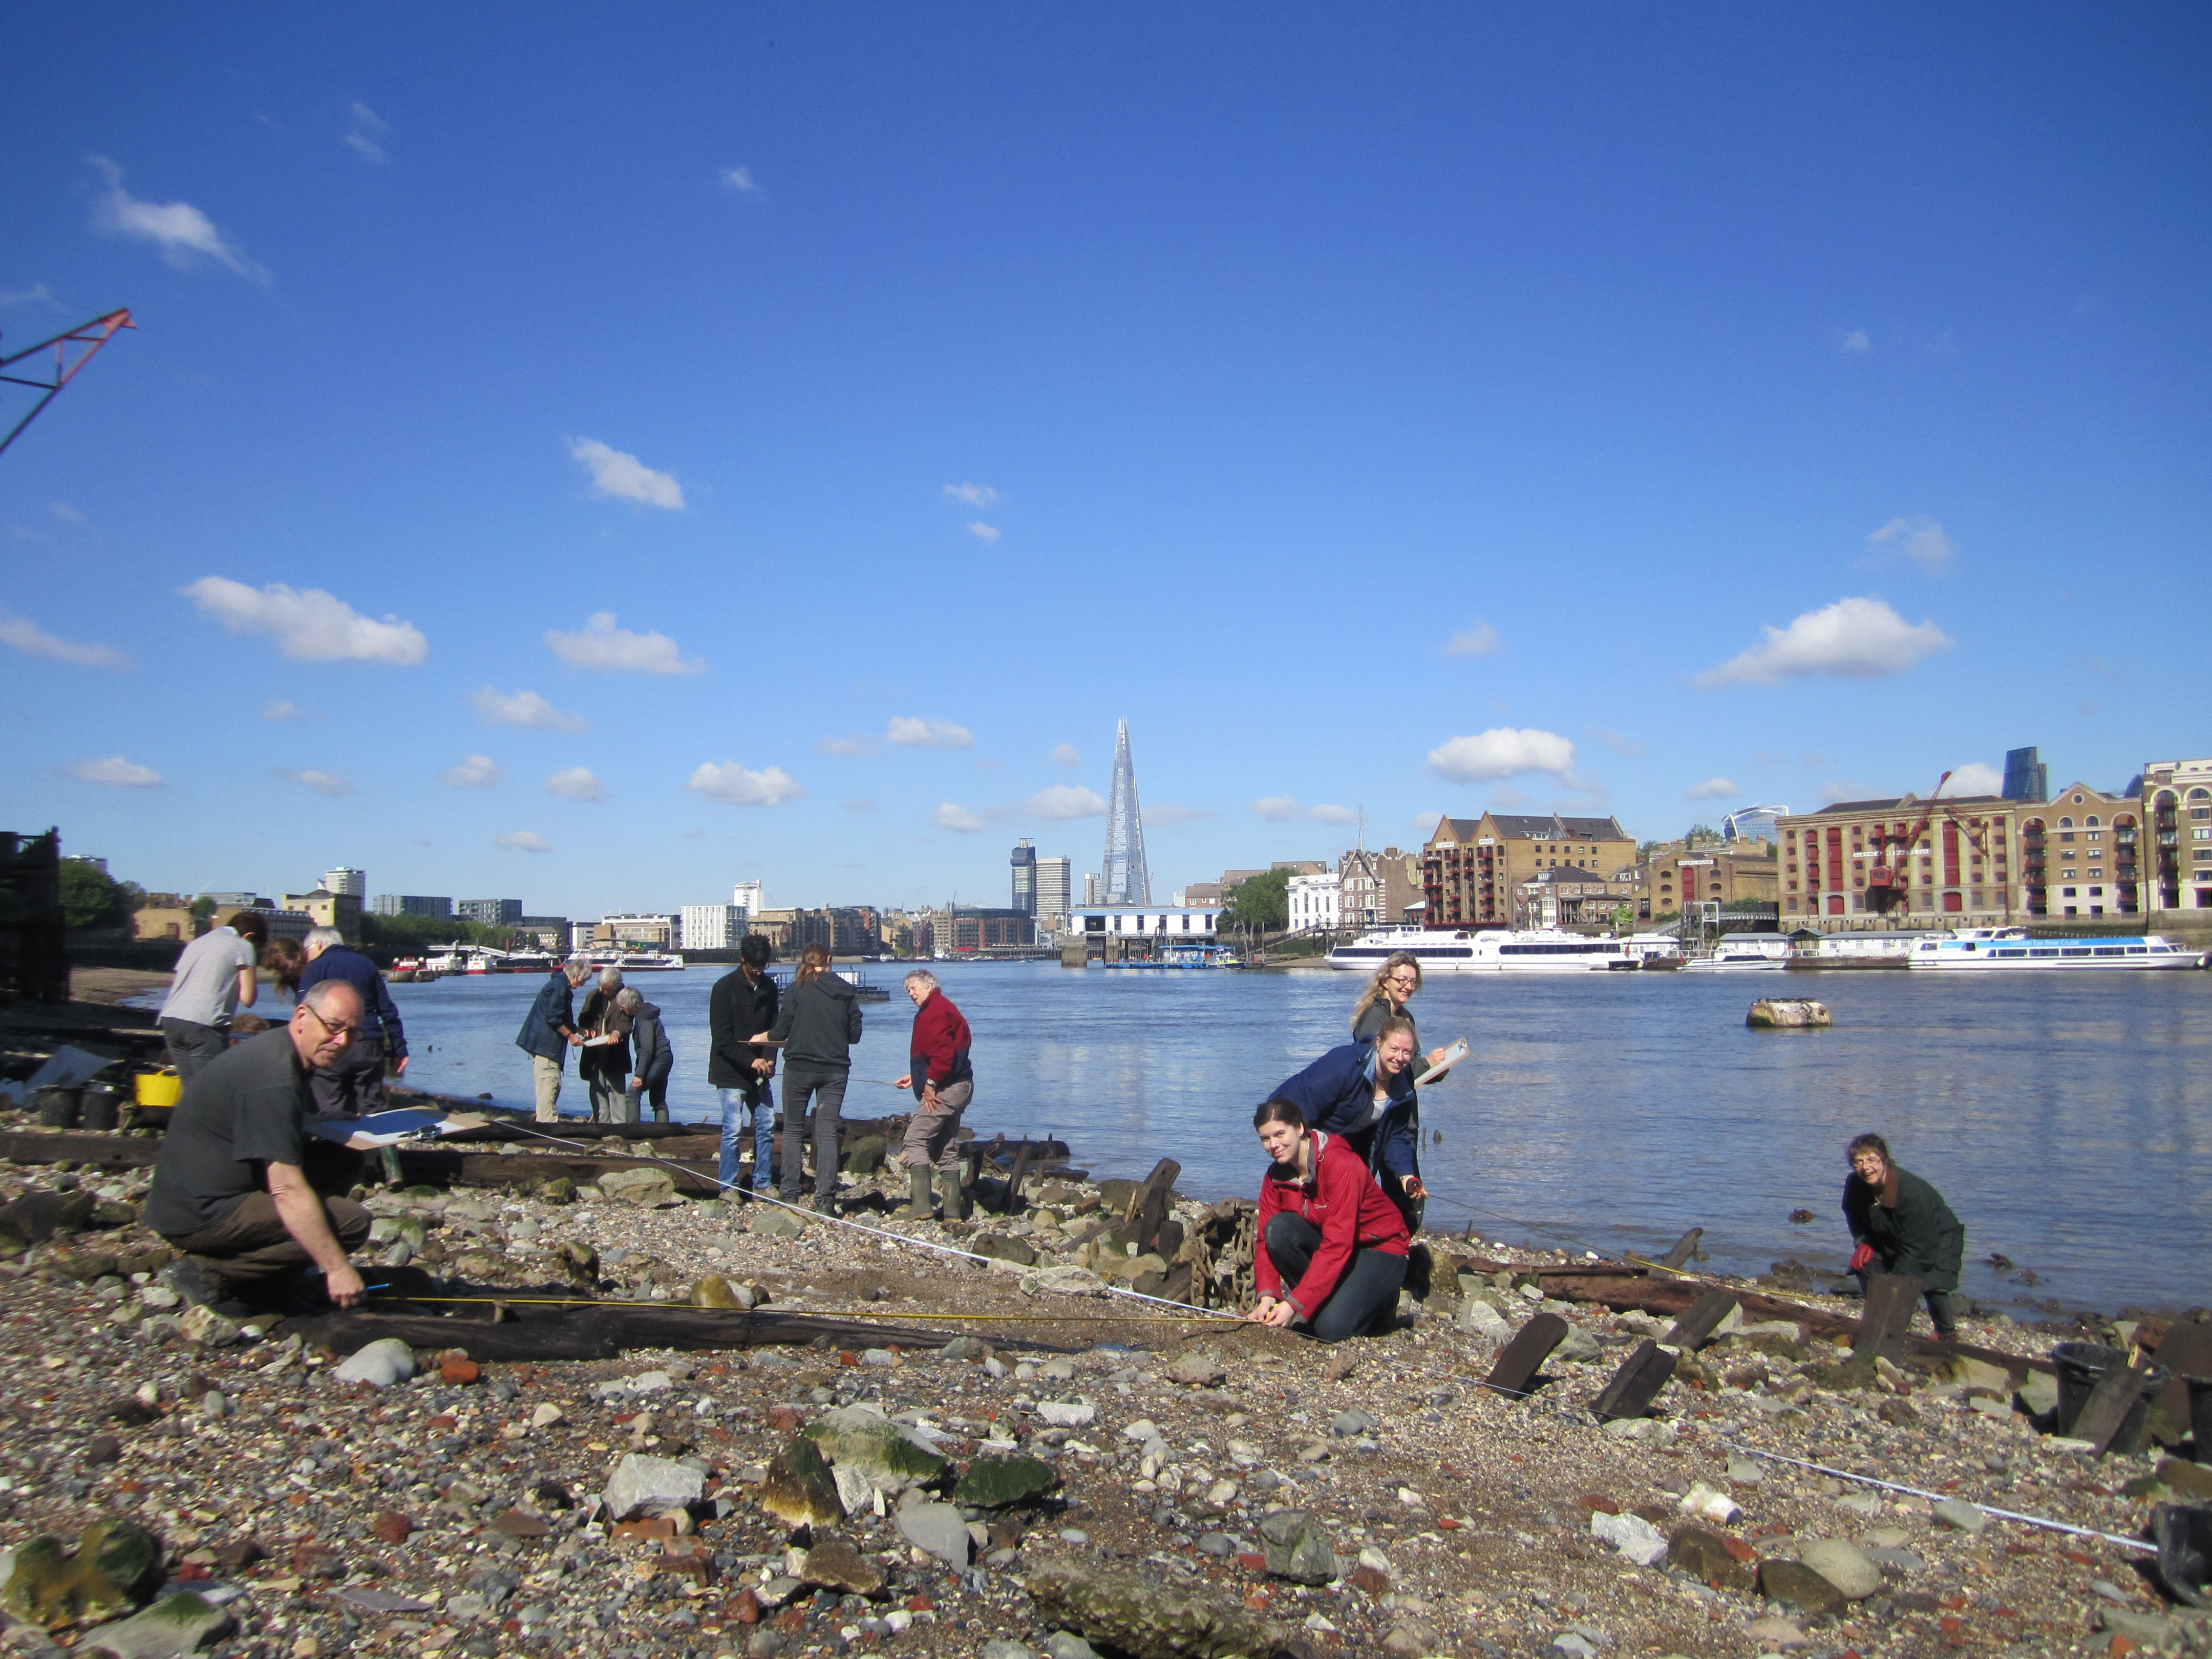 Thames Discovery Programme volunteers working on the foreshore at Rotherhithe